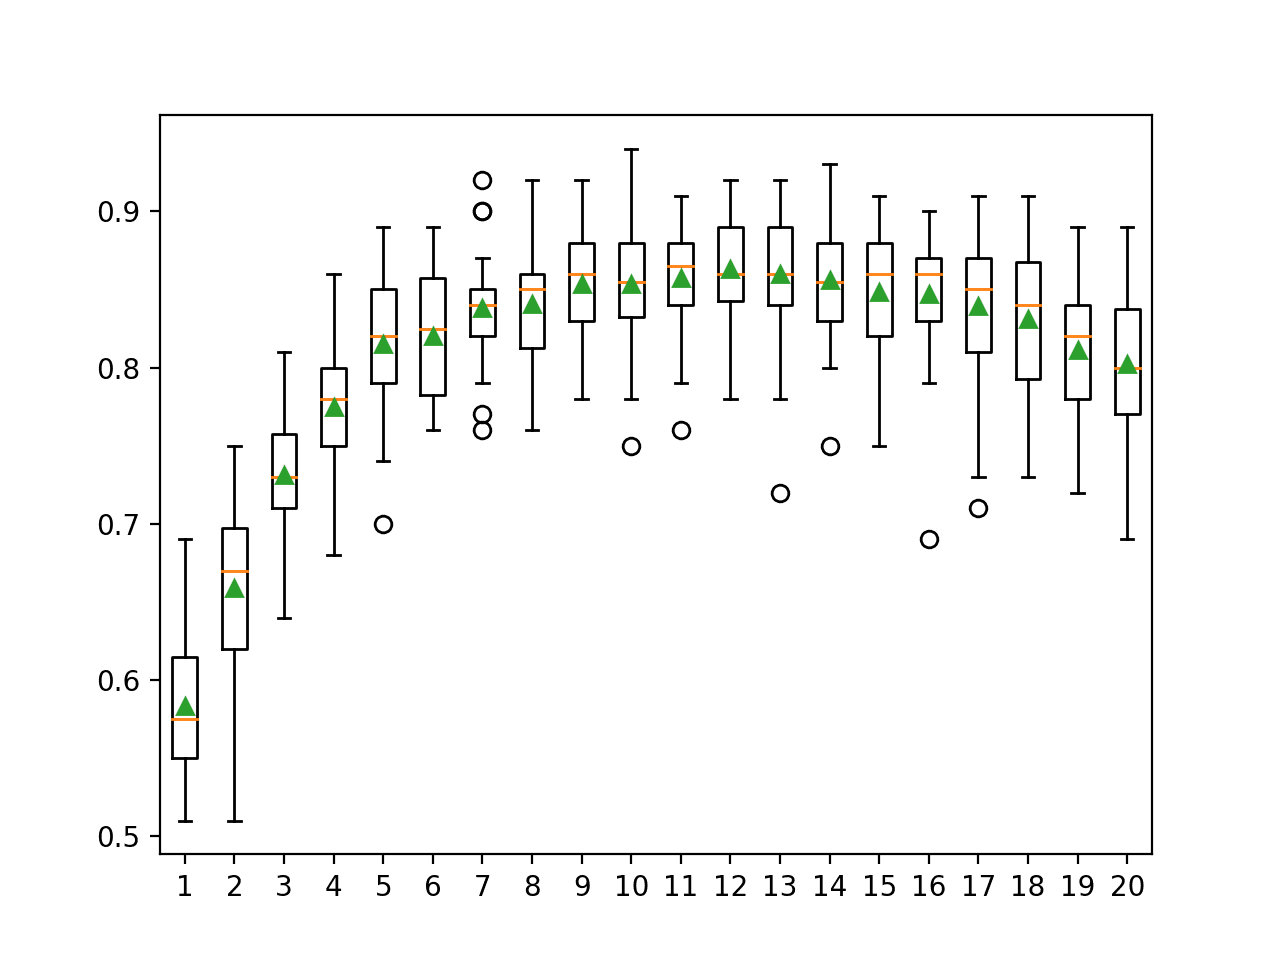 Box Plot of Random Subspace Ensemble Number of Features vs. Classification Accuracy